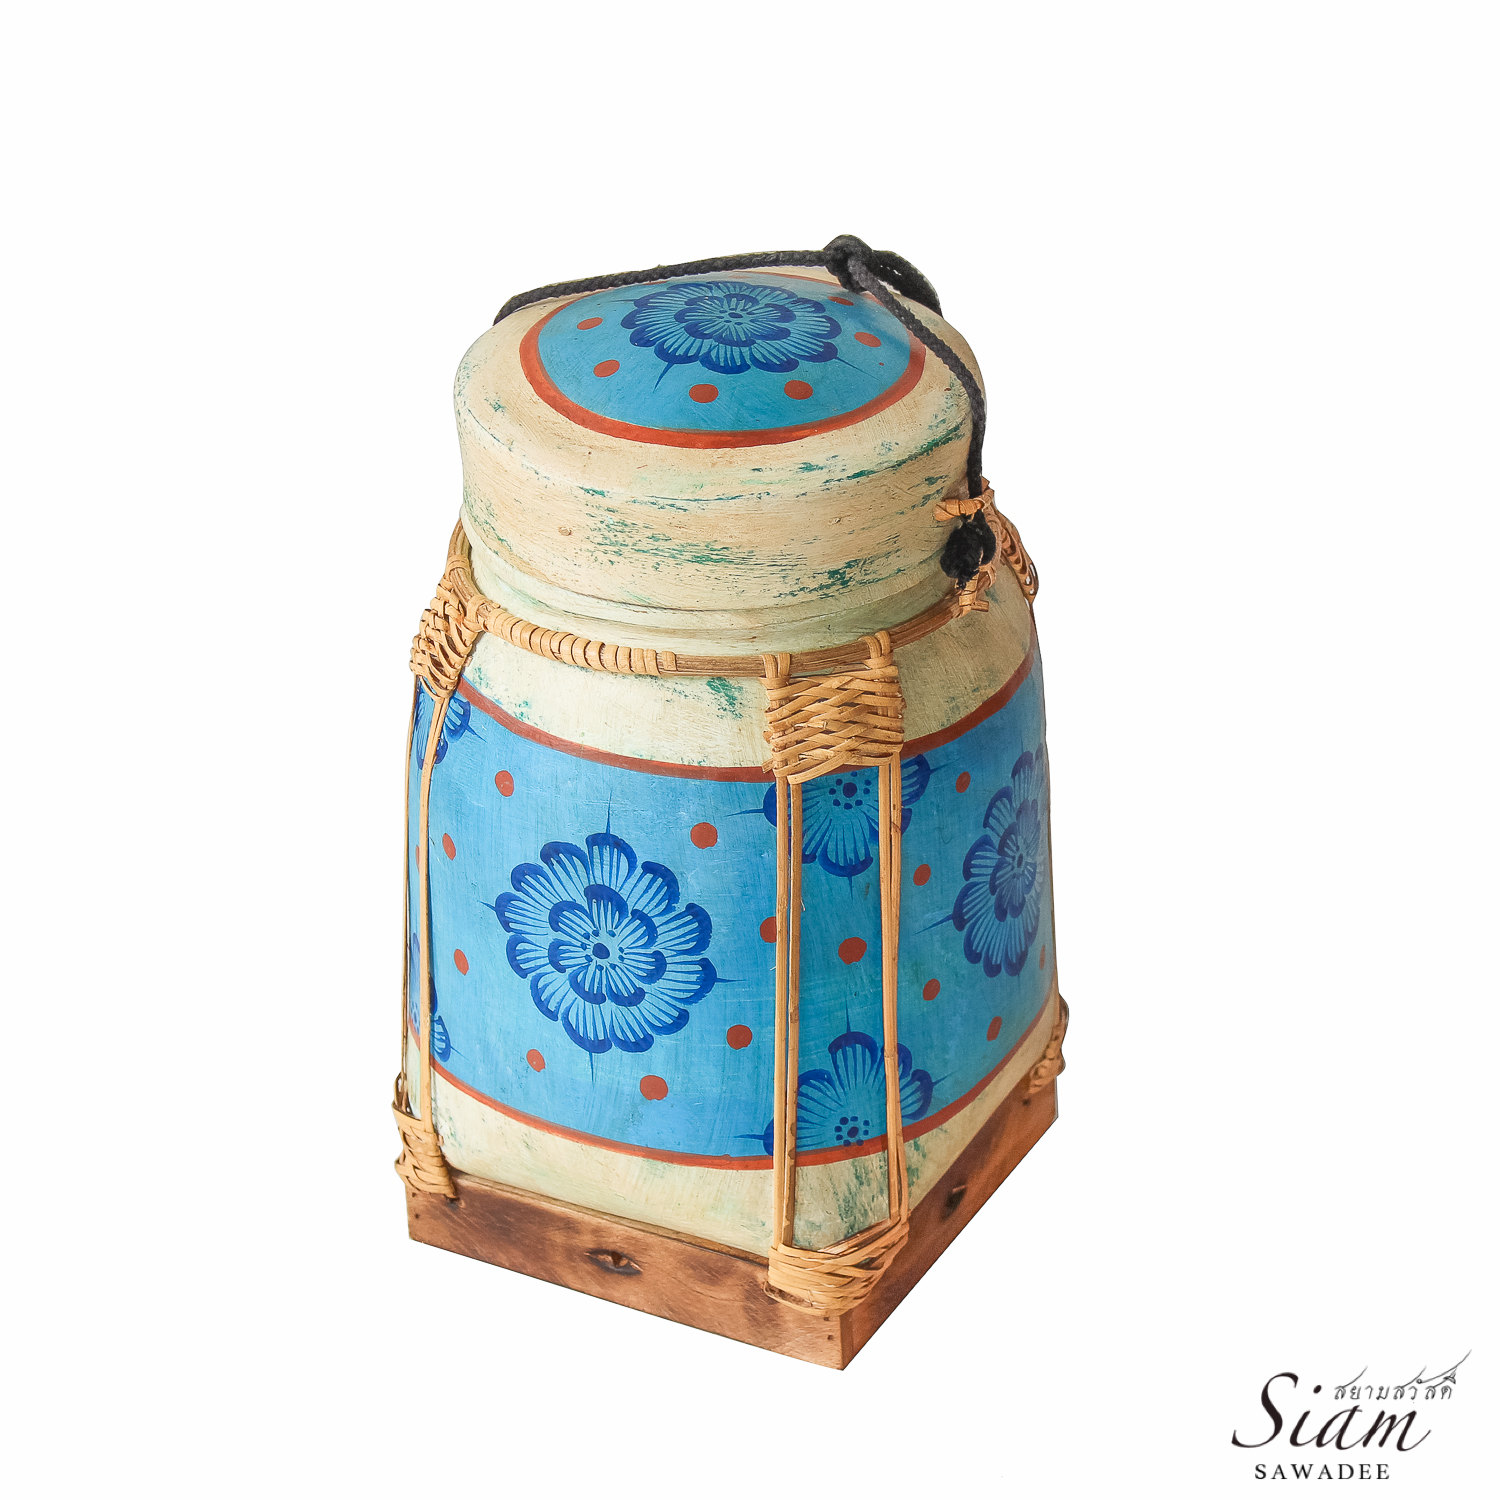 Baskets Online Buy Hand Painted Rattan Weaving Rice Basket Online